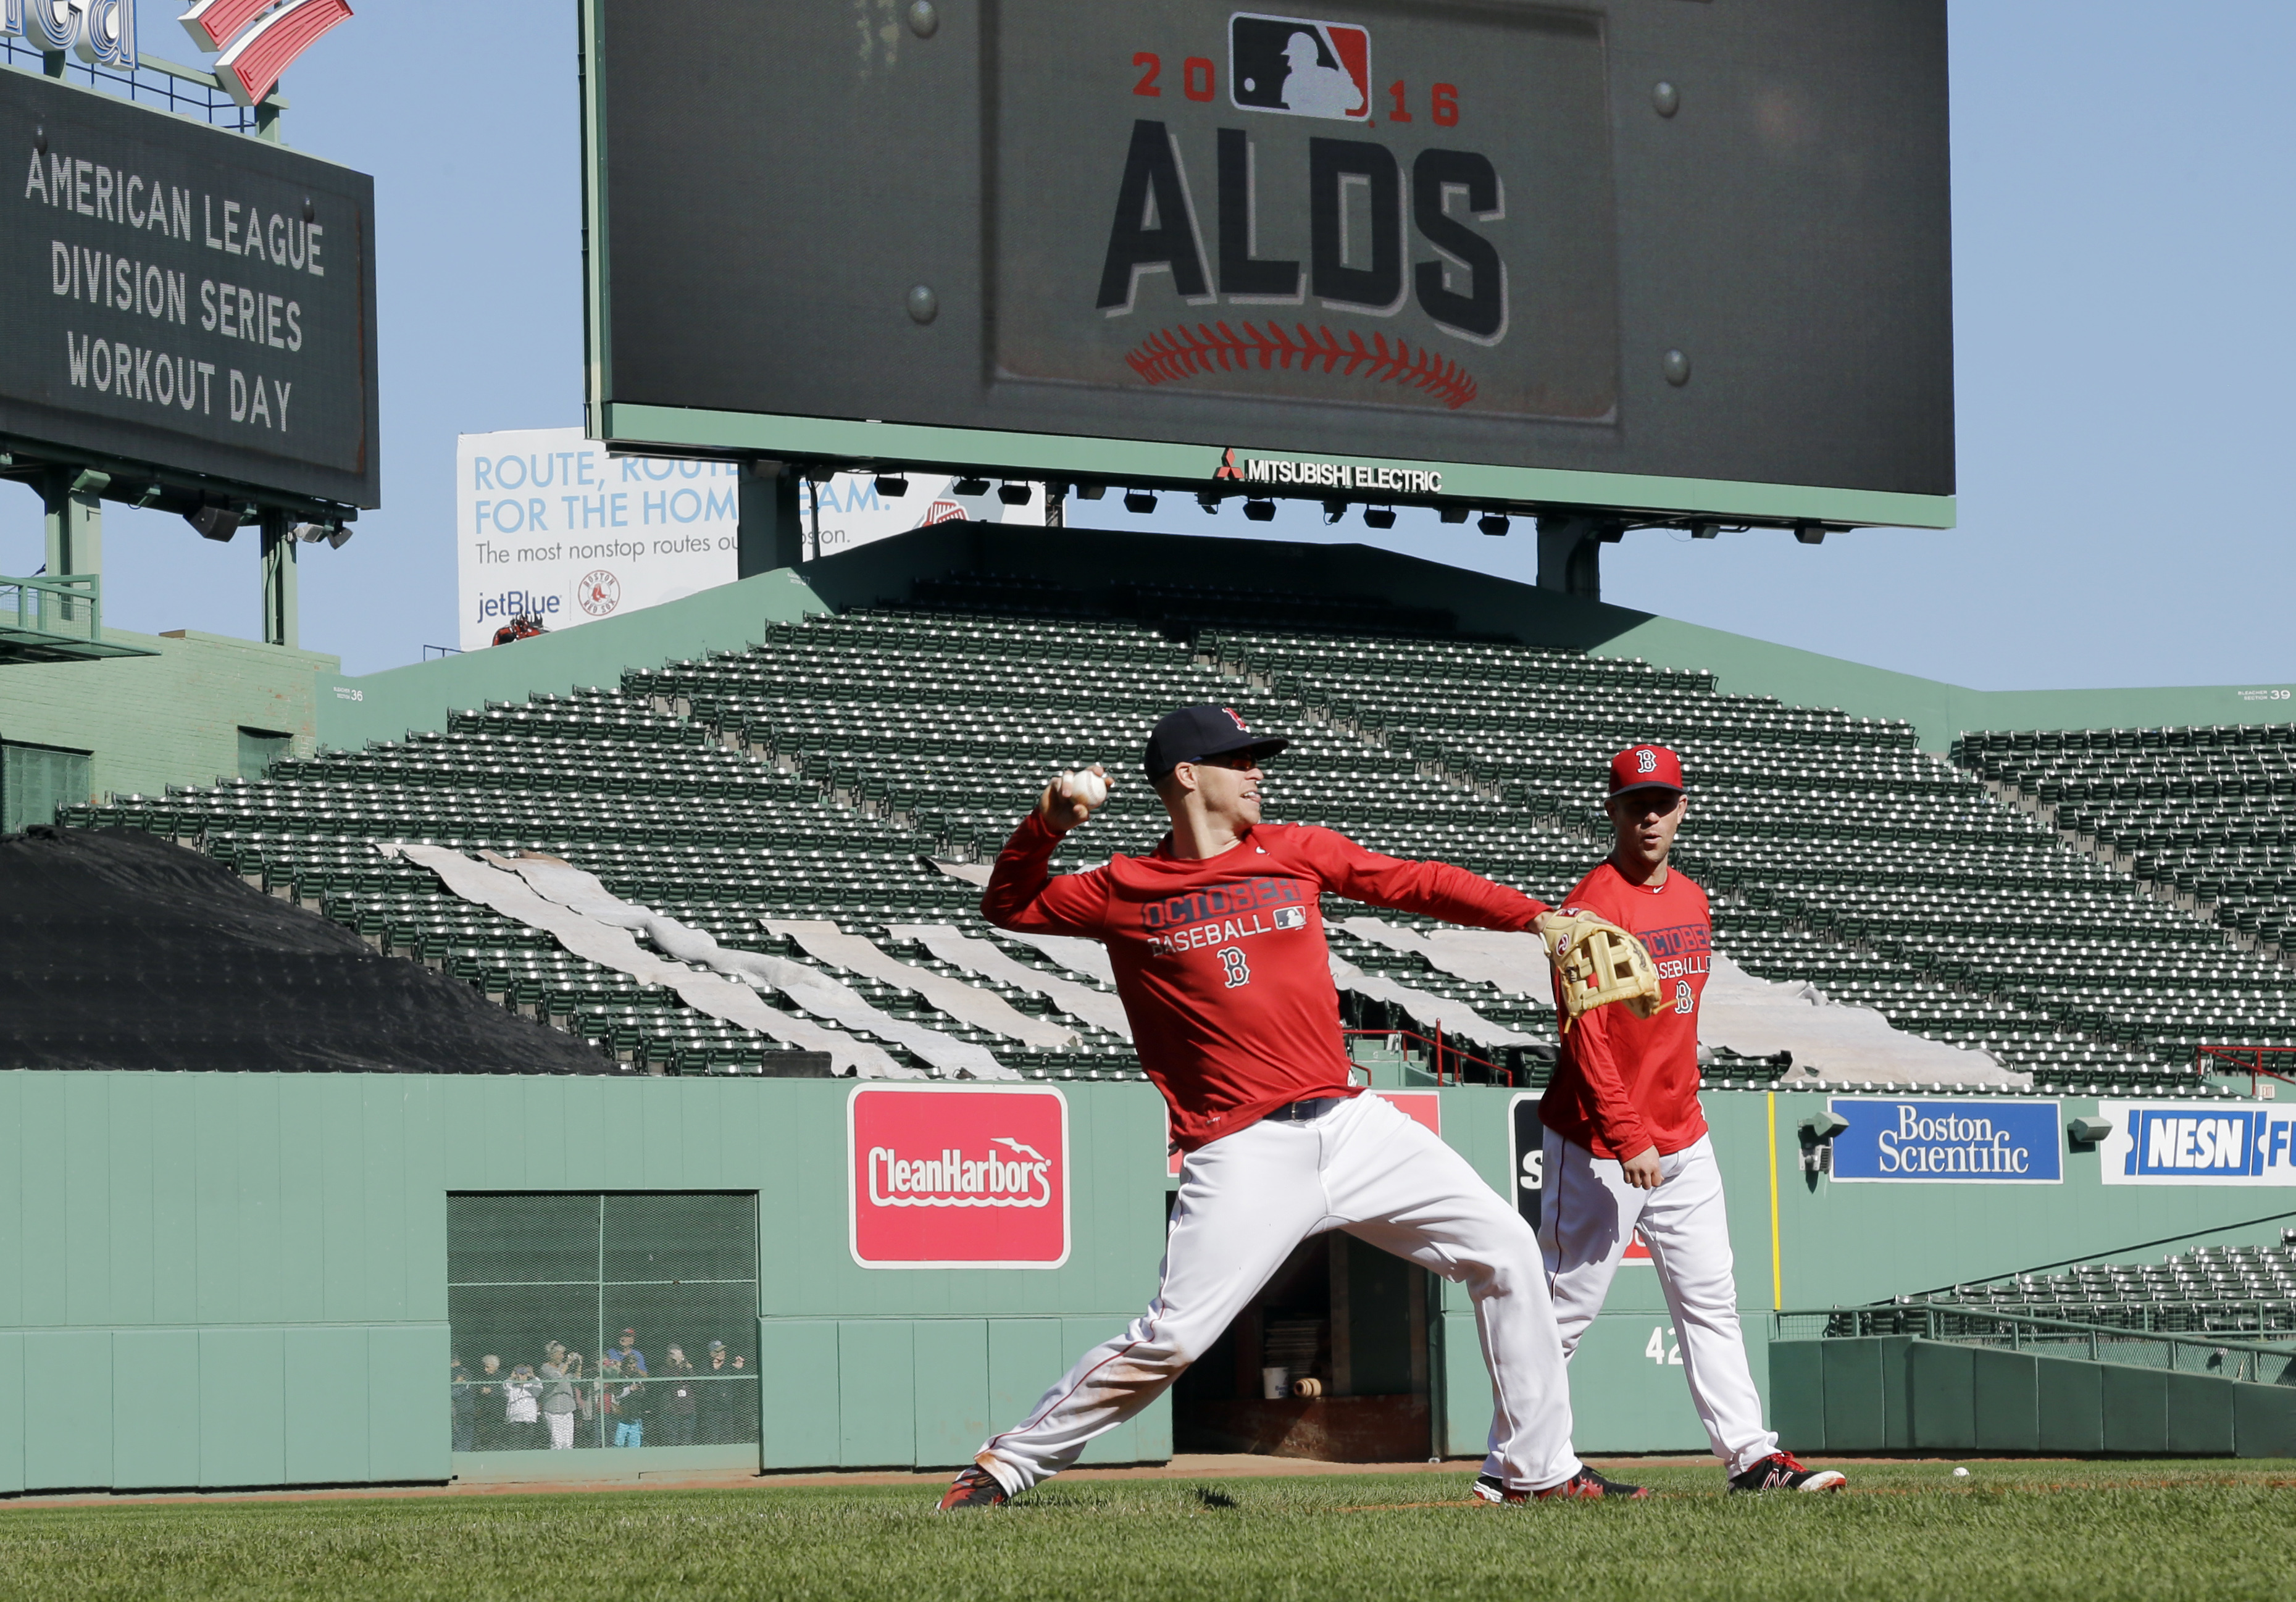 Boston Red Sox's Brock Holt, left, throws as Aaron Hill watches during baseball team workout at Fenway Park, Tuesday, Oct. 4, 2016, in Boston, as they prepare for Game 1 of the  American League Division Series scheduled for Thursday in Cleveland. (AP Phot